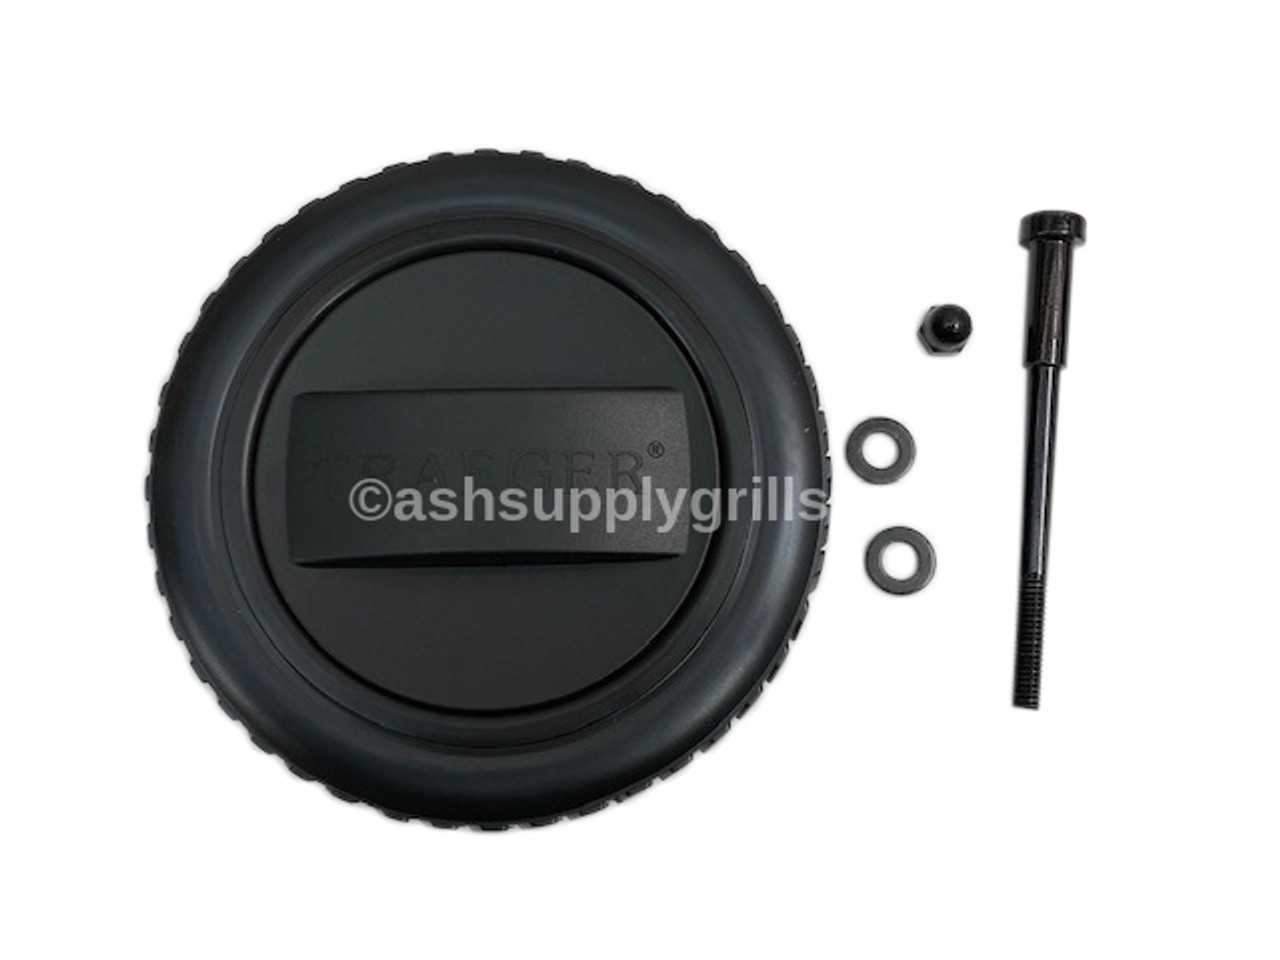 TRAEGER PELLET GRILLS GENUINE REPLACEMENT PART - KIT0138 PRO SERIES 22/34/575/780 LARGE WHEEL WITH HUB CAP